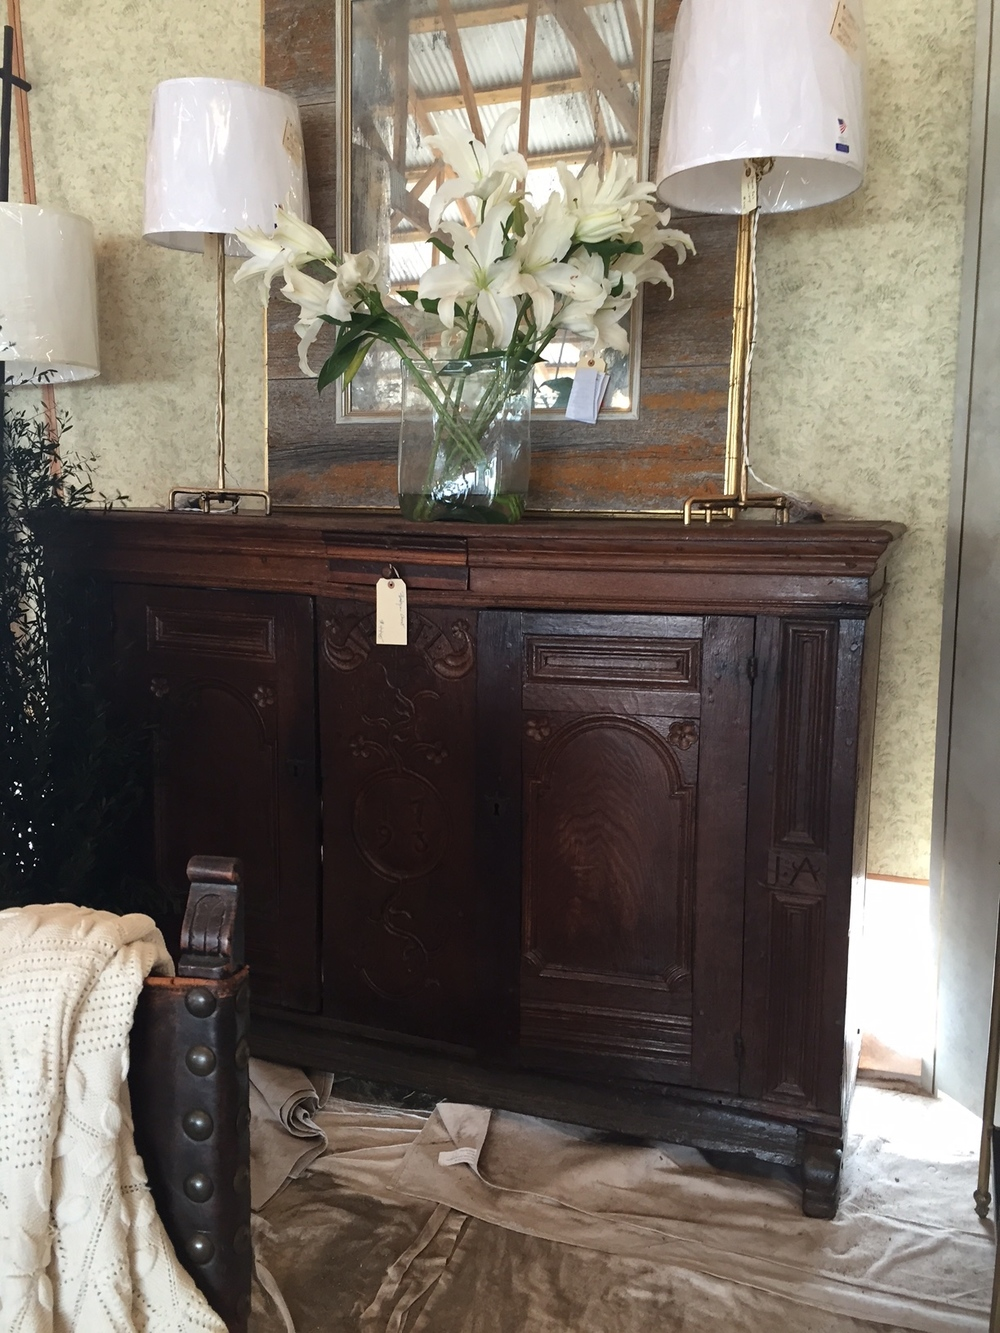 Petite antique lamps flanking a beautiful distressed mirror. Gorgeous chest dating from 1793.